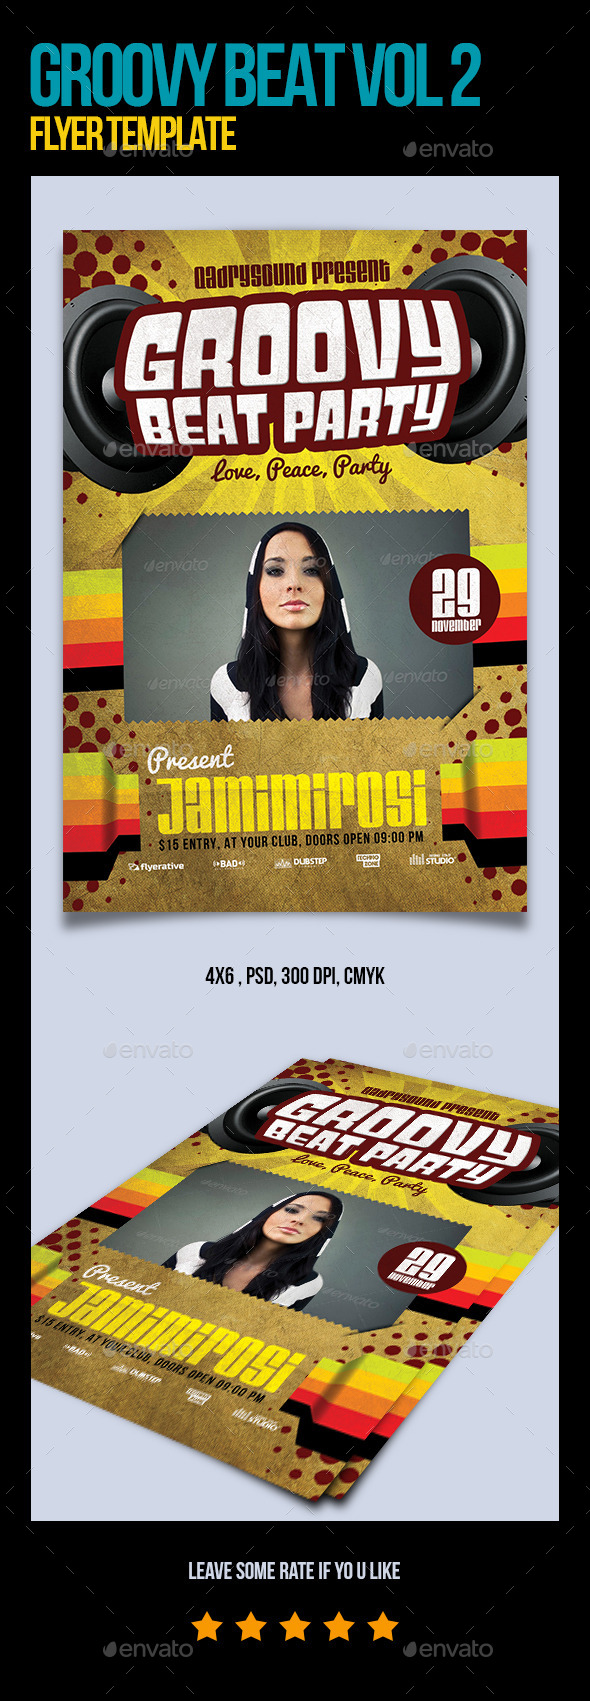 Groovy Beat Vol 2 Flyer Template - Clubs & Parties Events